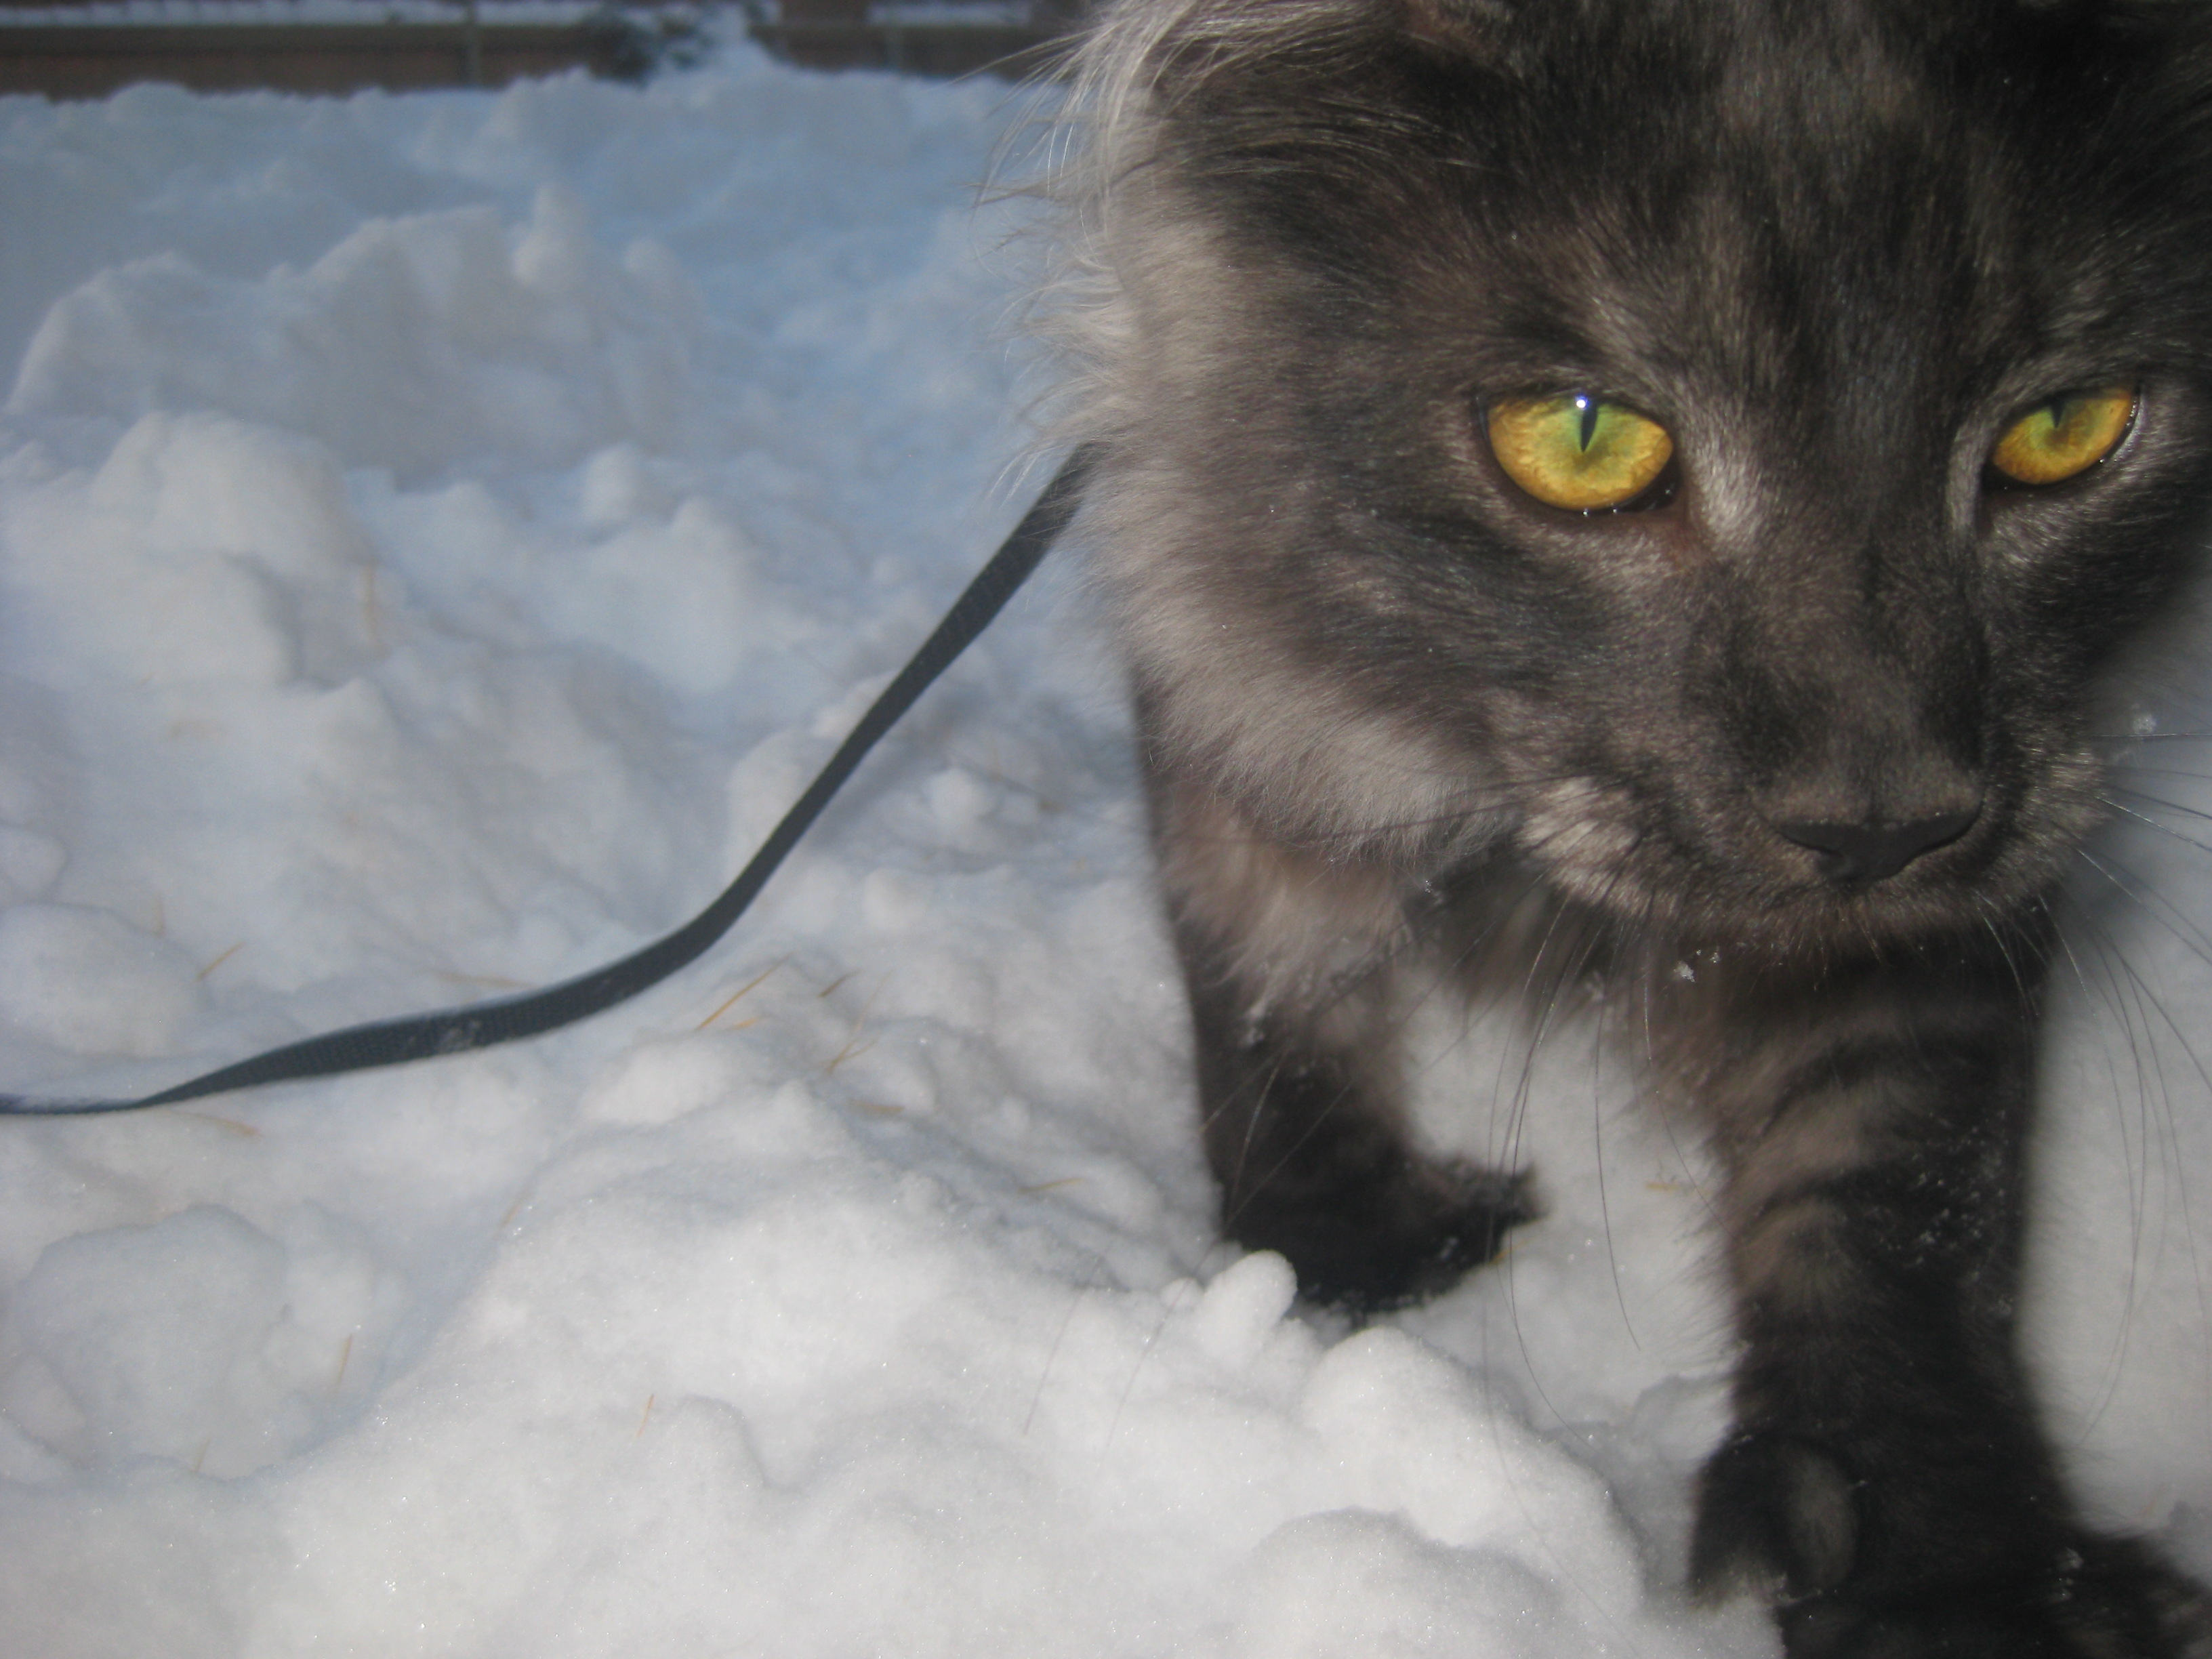 Faaqidaad : Maine coon kittens for sale pacific northwest